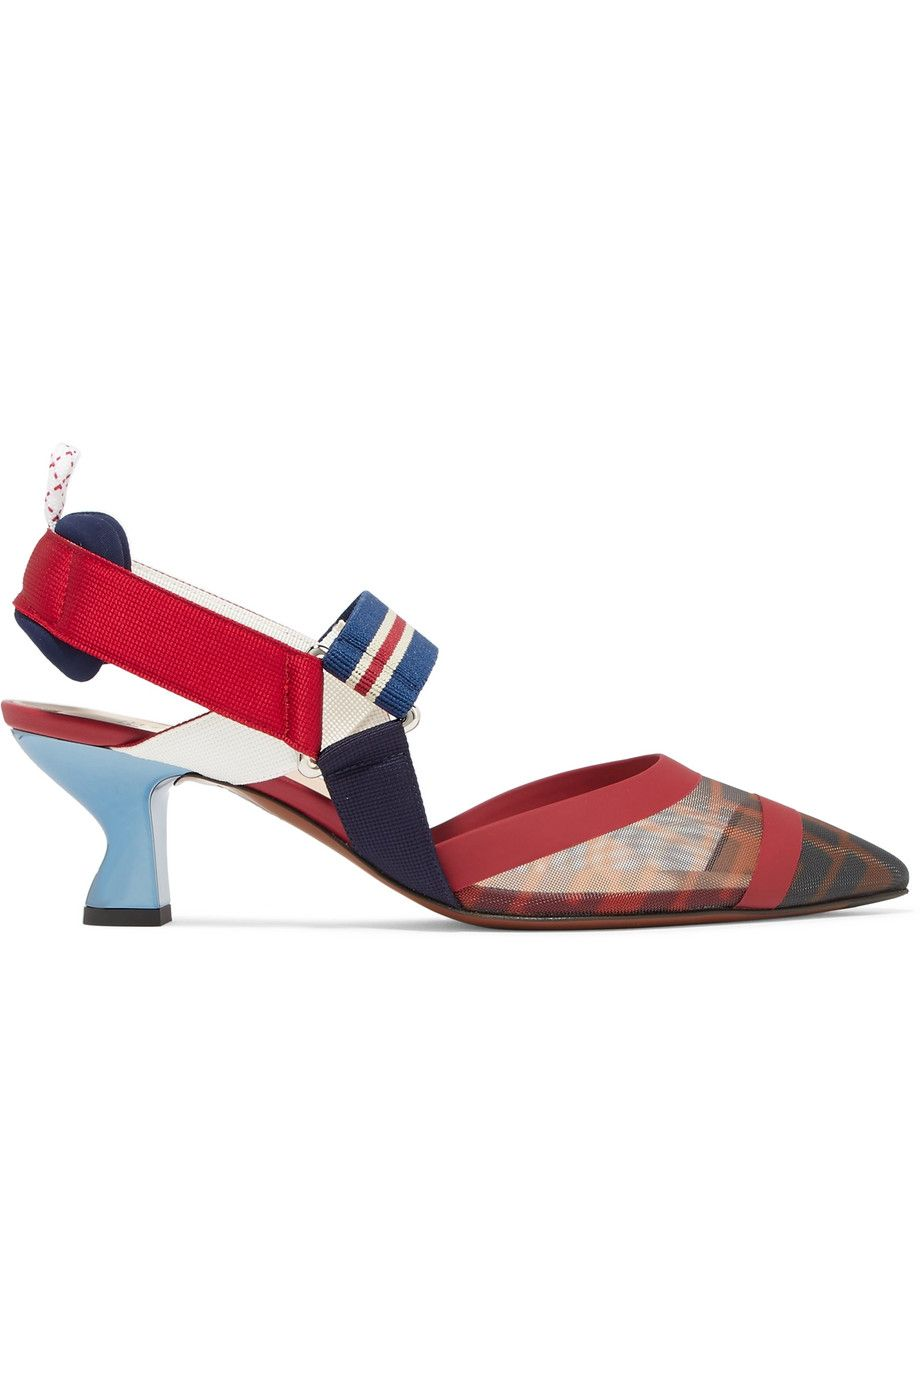 Colibrì Logo-Print Mesh and Rubber Slingback Pumps Fendi net-a-porter.com $850.00 SHOP NOW Wear these sling backs for any important meeting you may have.